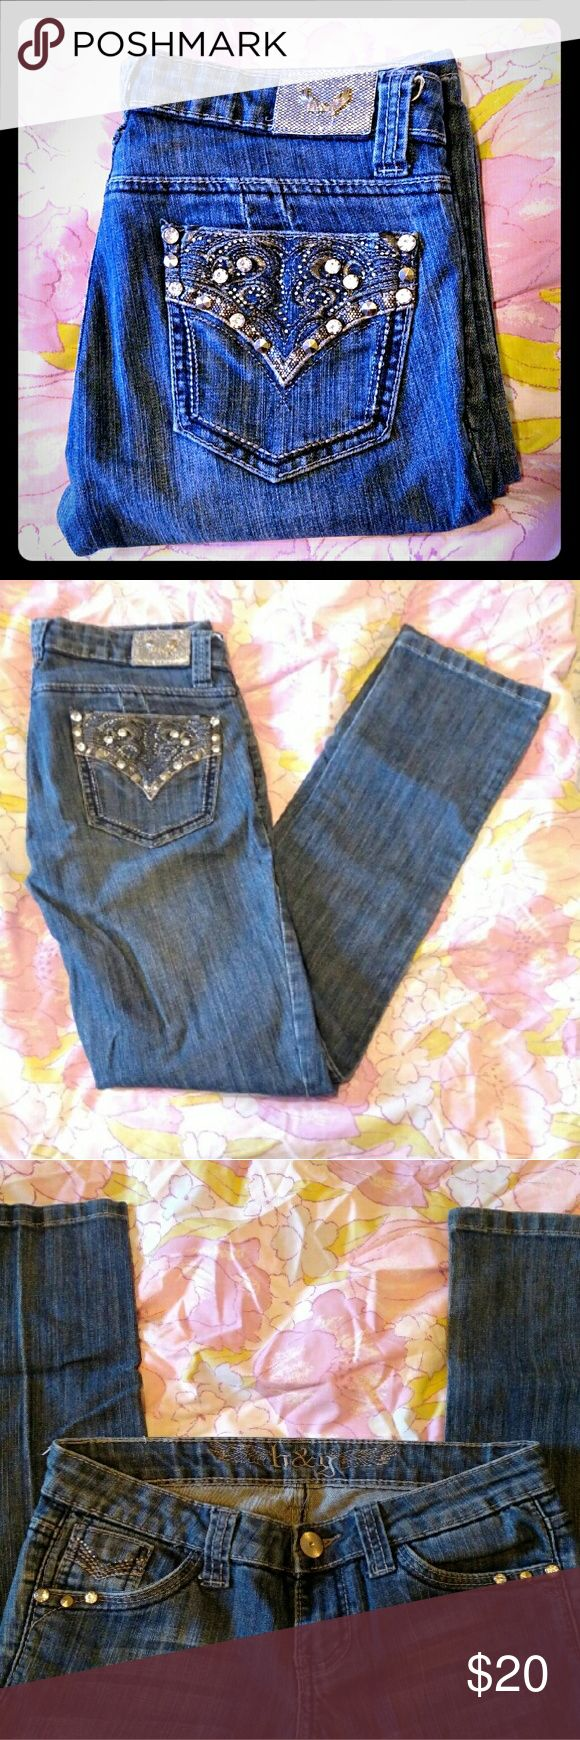 H & G Studded Pocket Skinny Jeans Adorable, edgy studded skinny jeans! Perfect for any rock look! Embroidery, Silver rhinestones and studs on the back pockets. Lots of bling! Stretch denim, dark wash. I didn't see any studs missing or damage when I looked over these again.  H & G Size: Junior's 7  *If you notice anything wrong with an item that I might have missed, please let me know. I want you to love your item. Thank you & happy poshing!* H & G Jeans Skinny